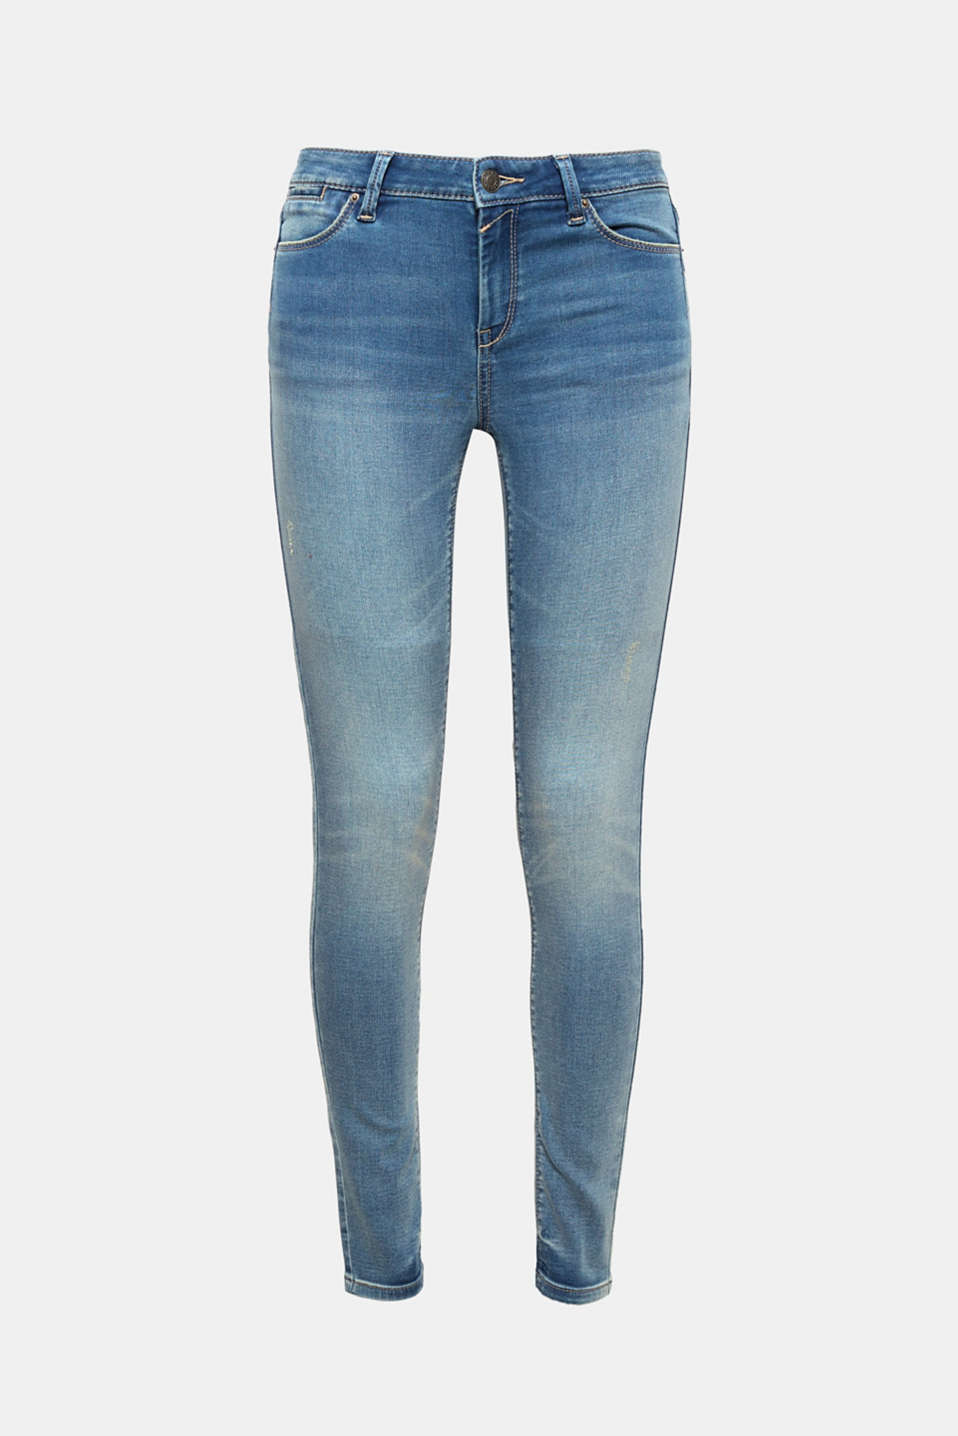 These skinny jeans with added stretch for comfort in a 5-pocket style are an indispensable essential!